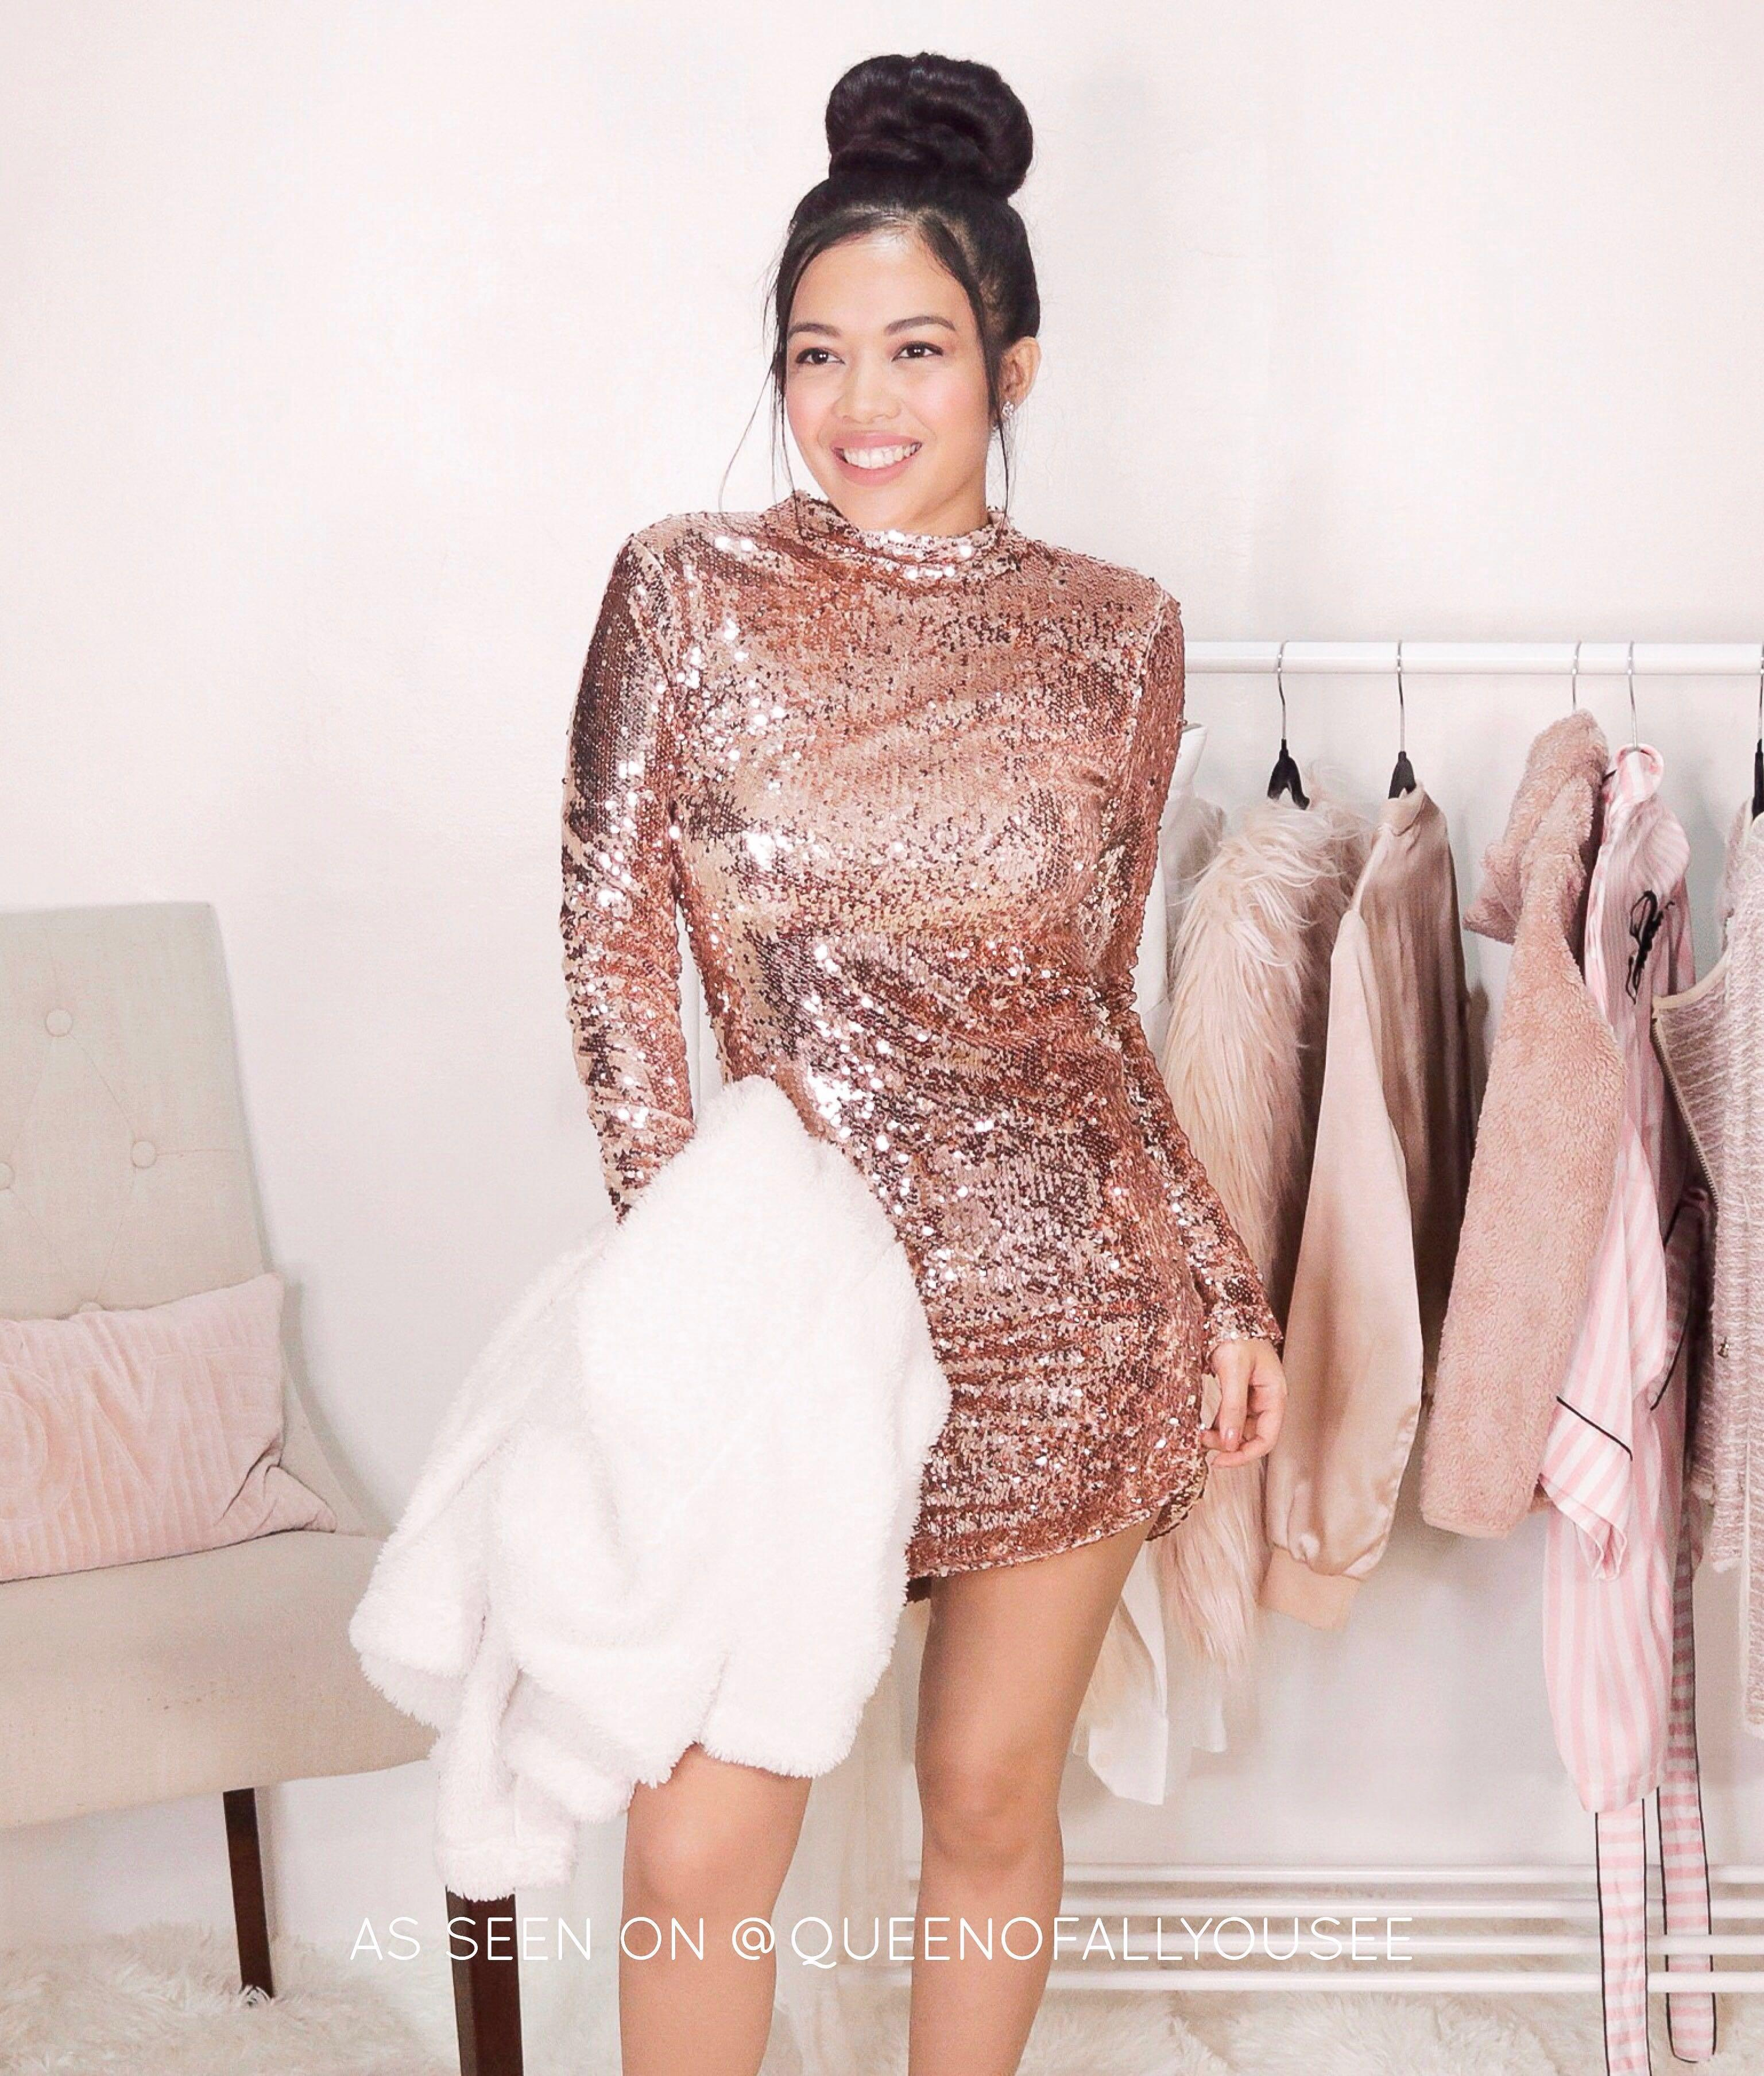 b96dc036 Fashion Nova Bestselling Rosegold Exposed Sequin Dress • very glam, sparkly,  sexy • inspired by Kylie Jenner's sequin long gown on Carousell